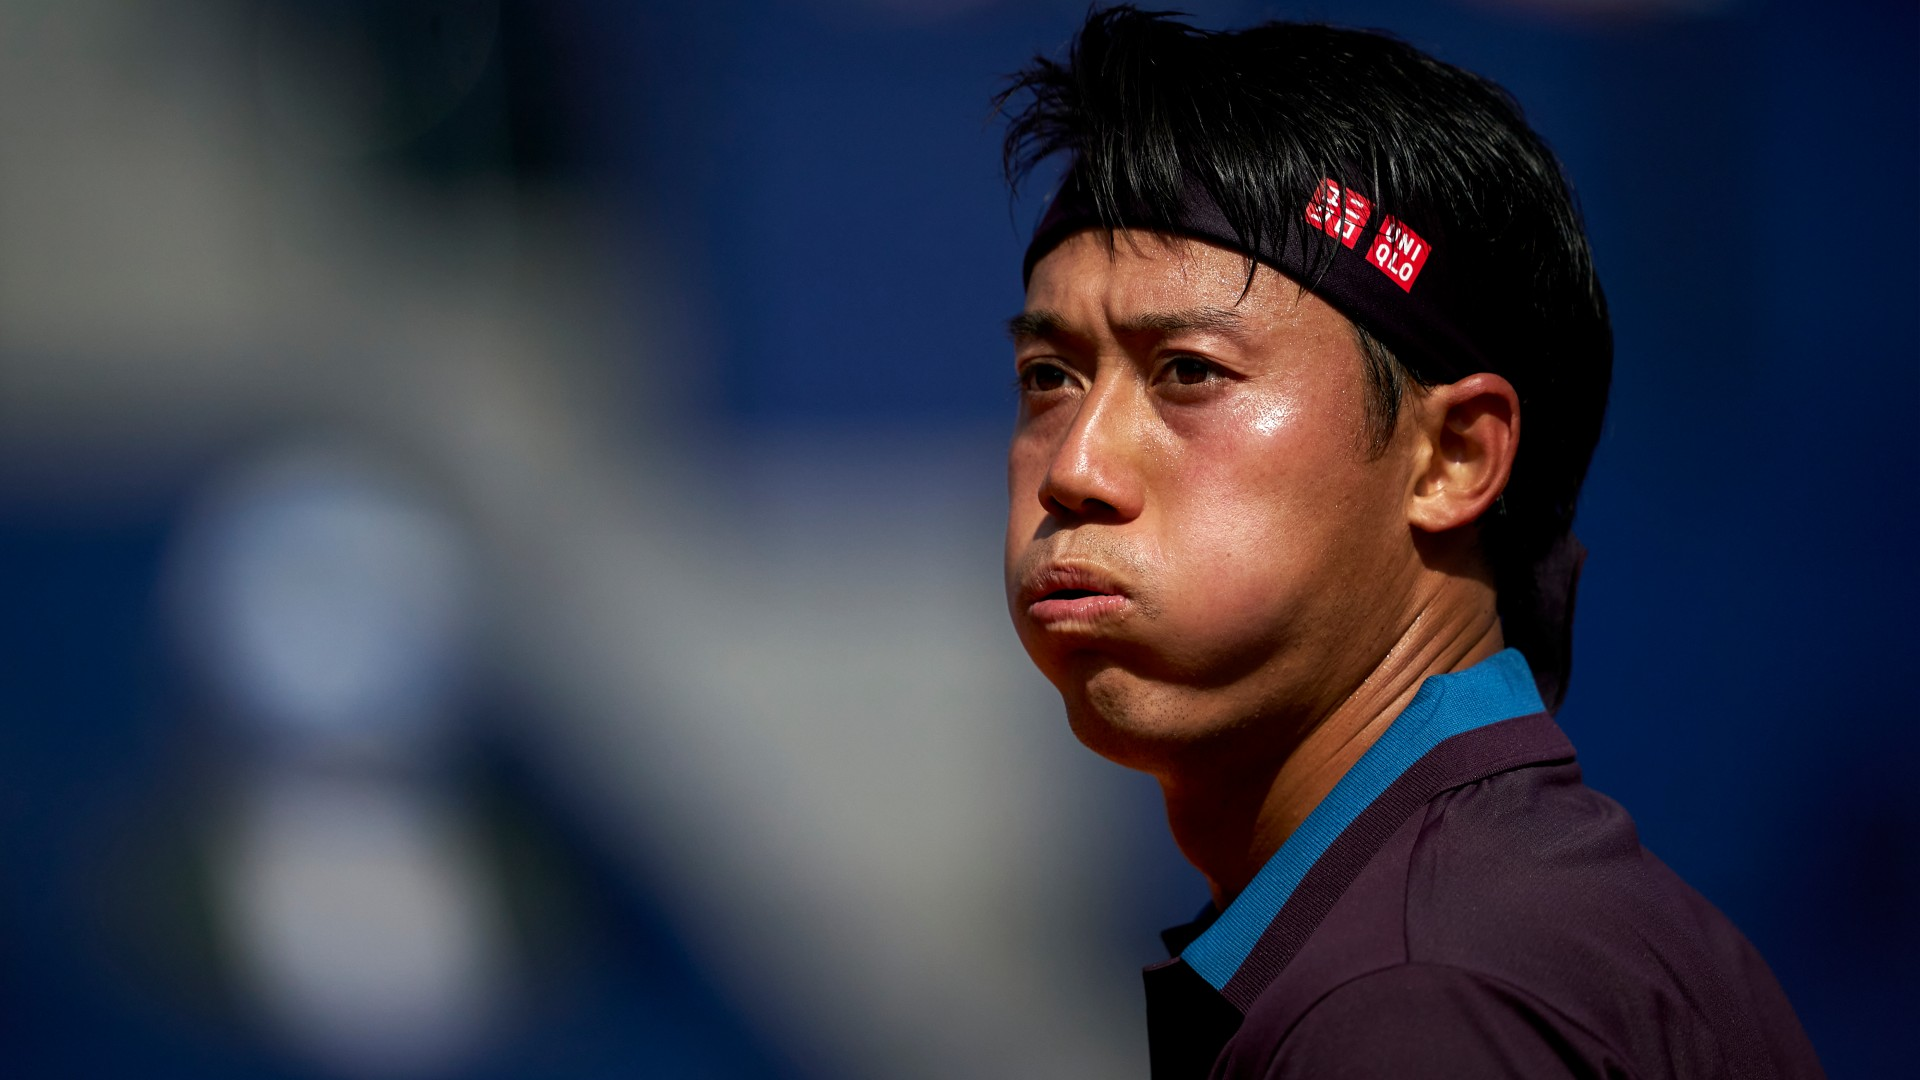 Nishikori escapes early elimination at Barcelona Open: I don't know how I fought through